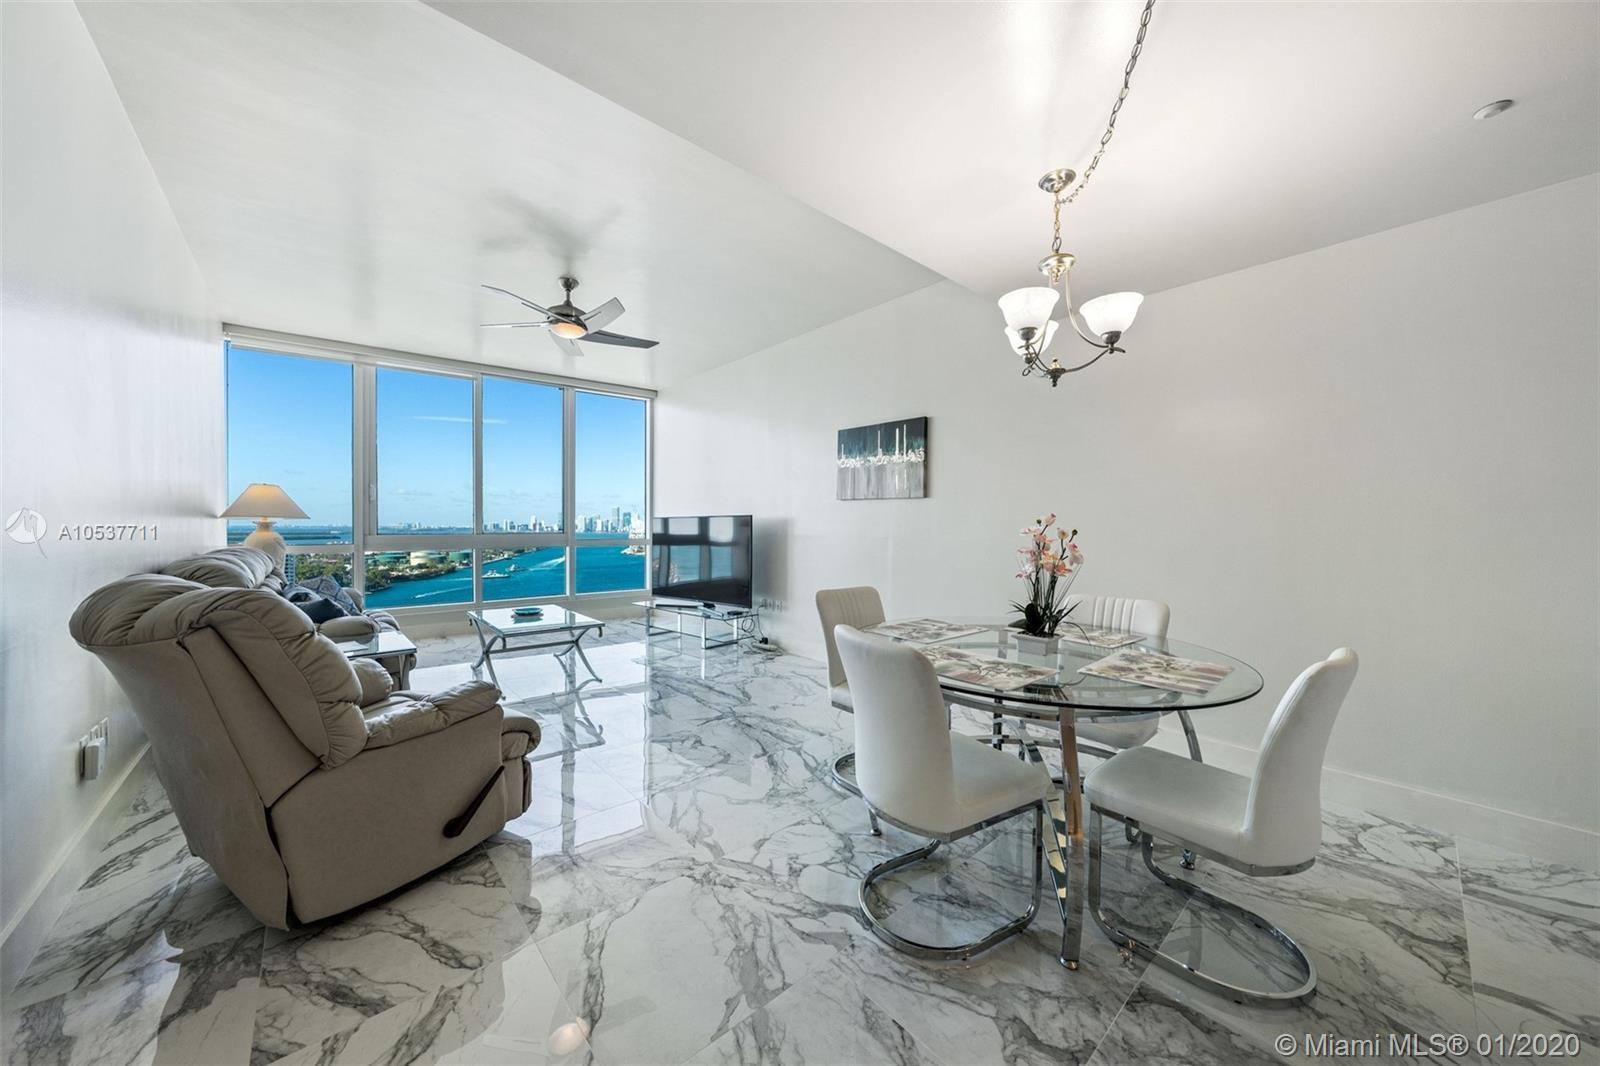 Largest 1 bedroom floor plan in the building. Offering spectacular views of Biscayne Bay, Downtown M